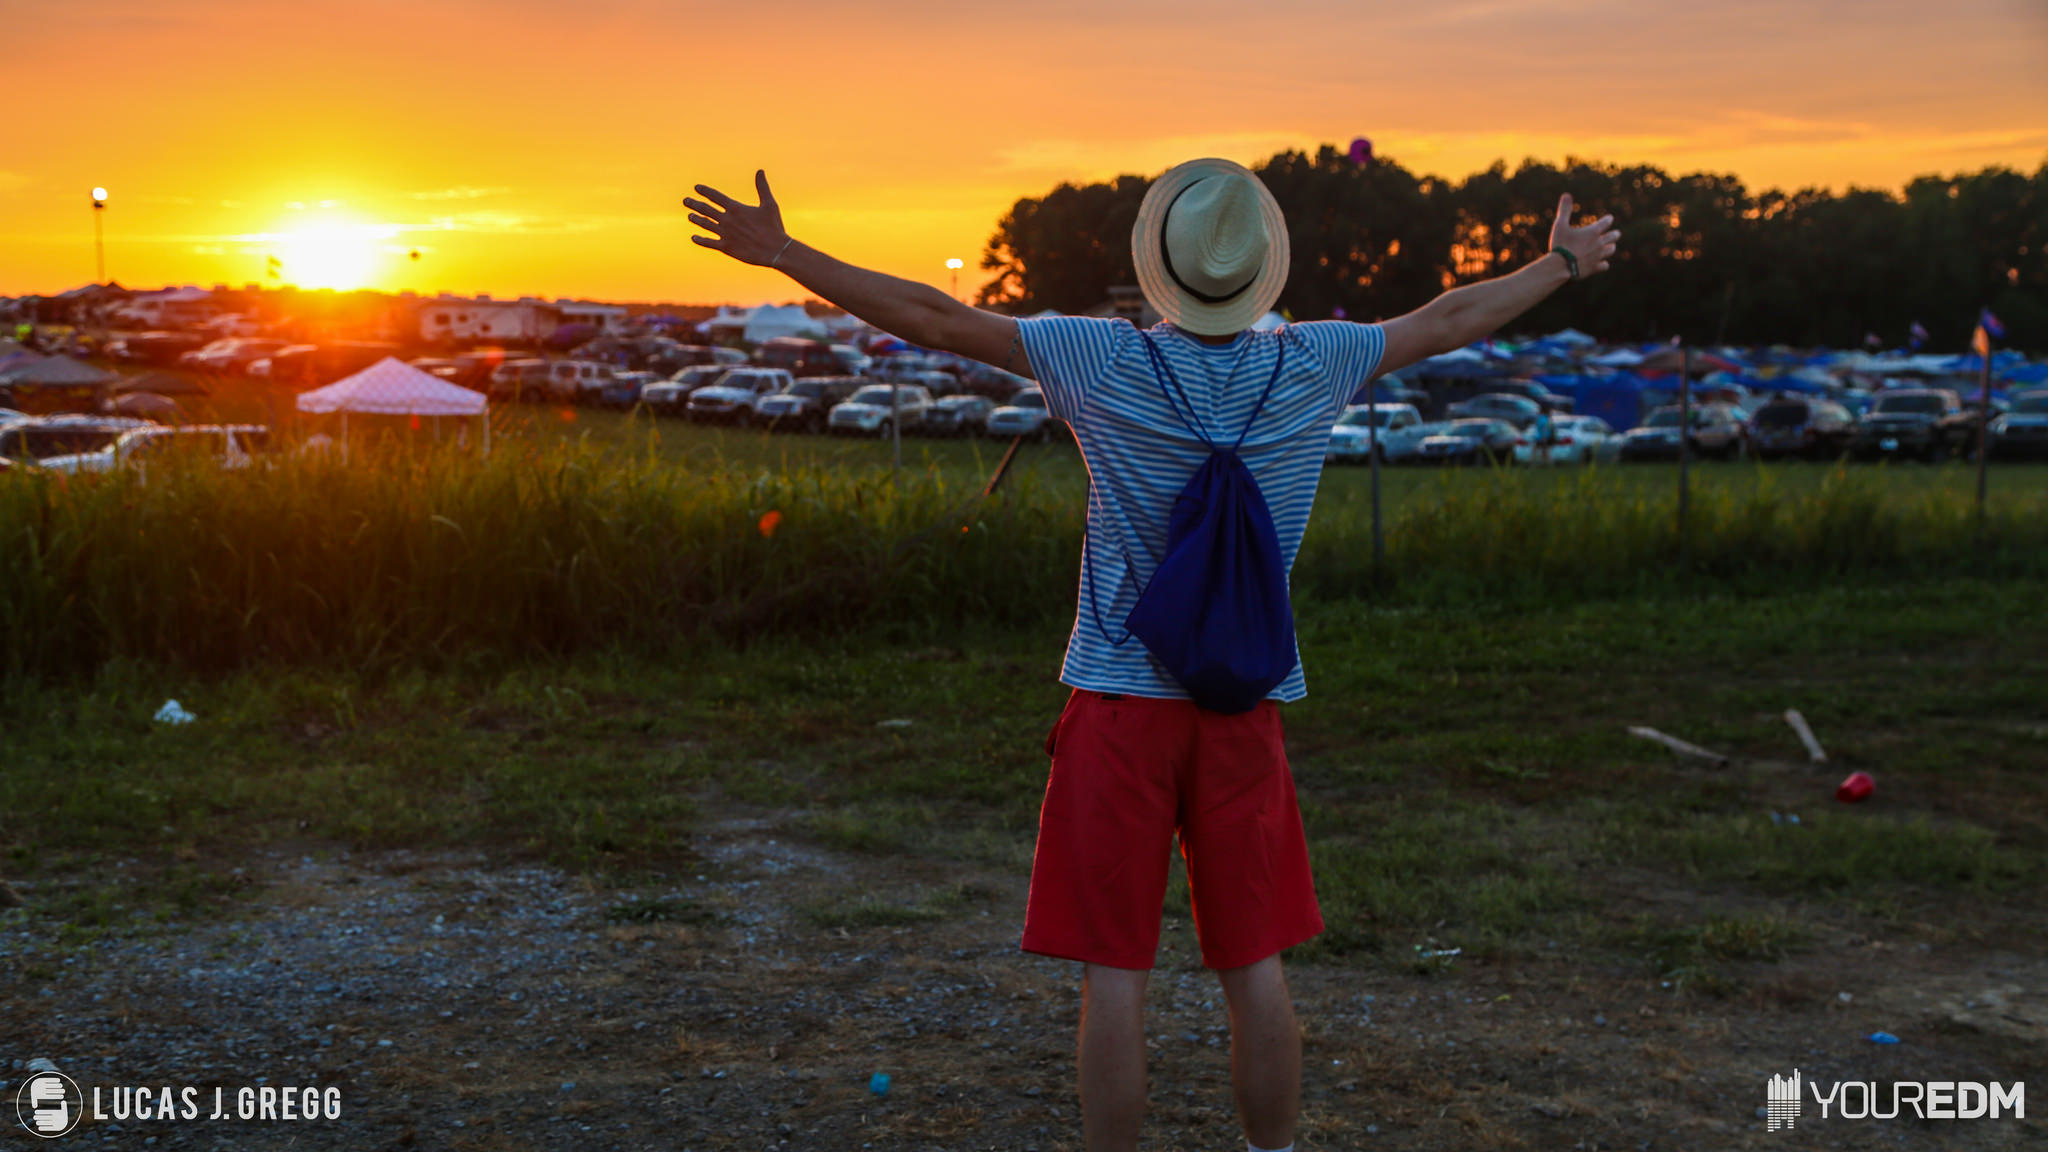 Man Found Dead at 2018 Bonnaroo Music Festival